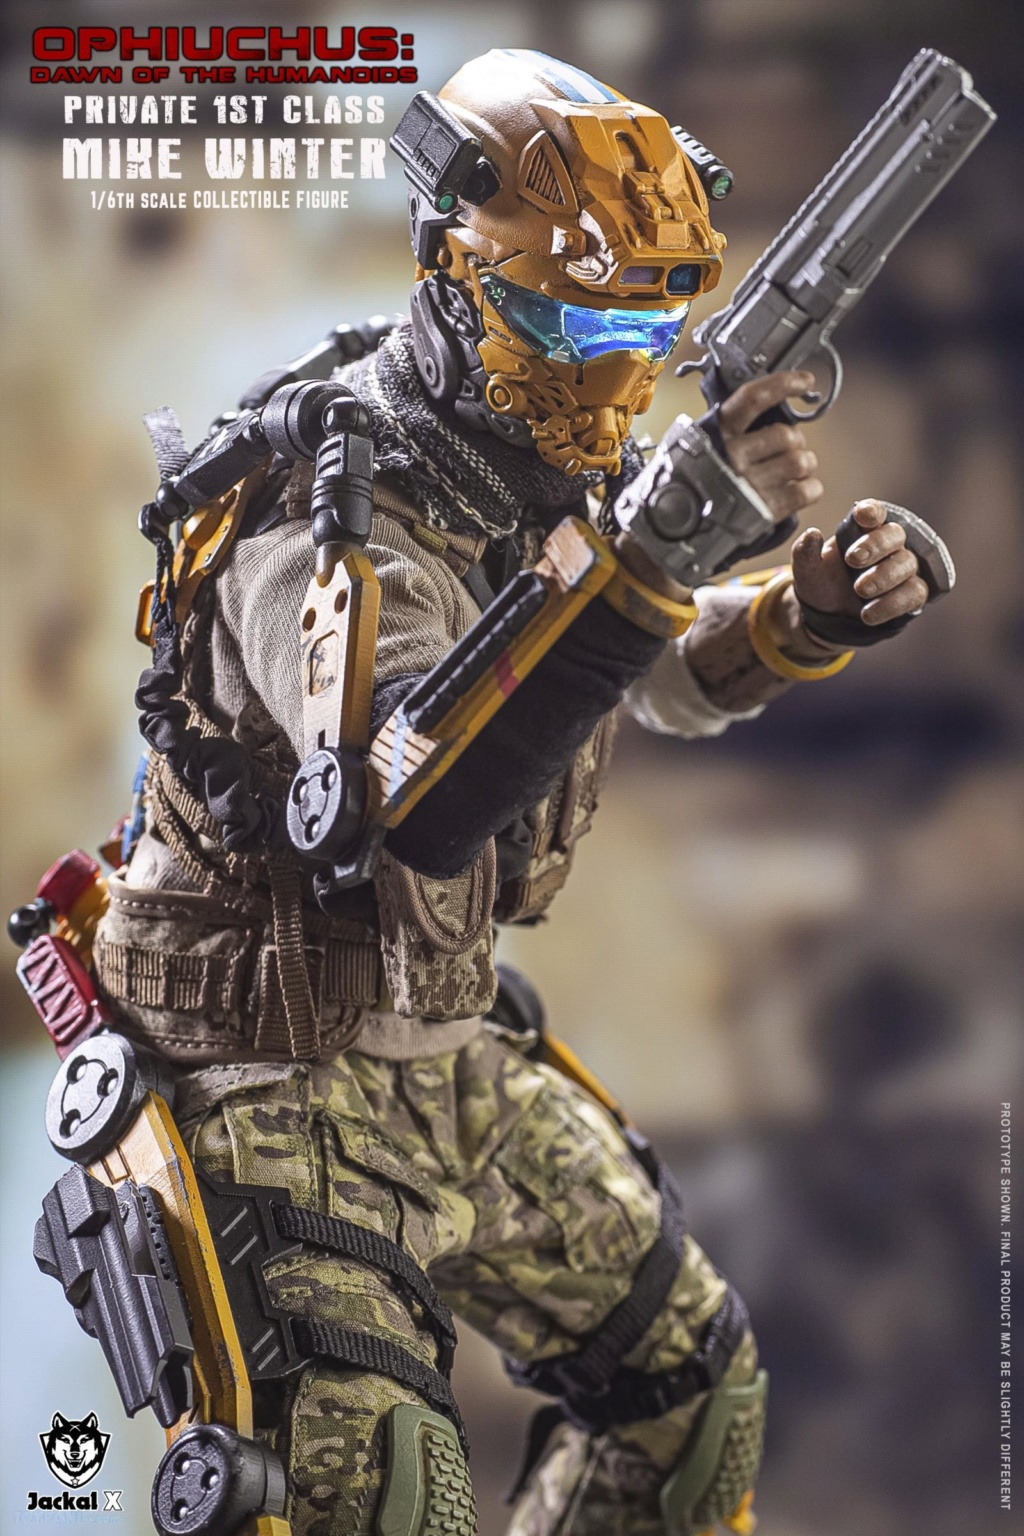 military - NEW PRODUCT: JackalX: 1/6 Ophiuchus: Dawn of Humanoid: Private 1st Class Mike Winter Collectible Figure (2 Versions) 43202020